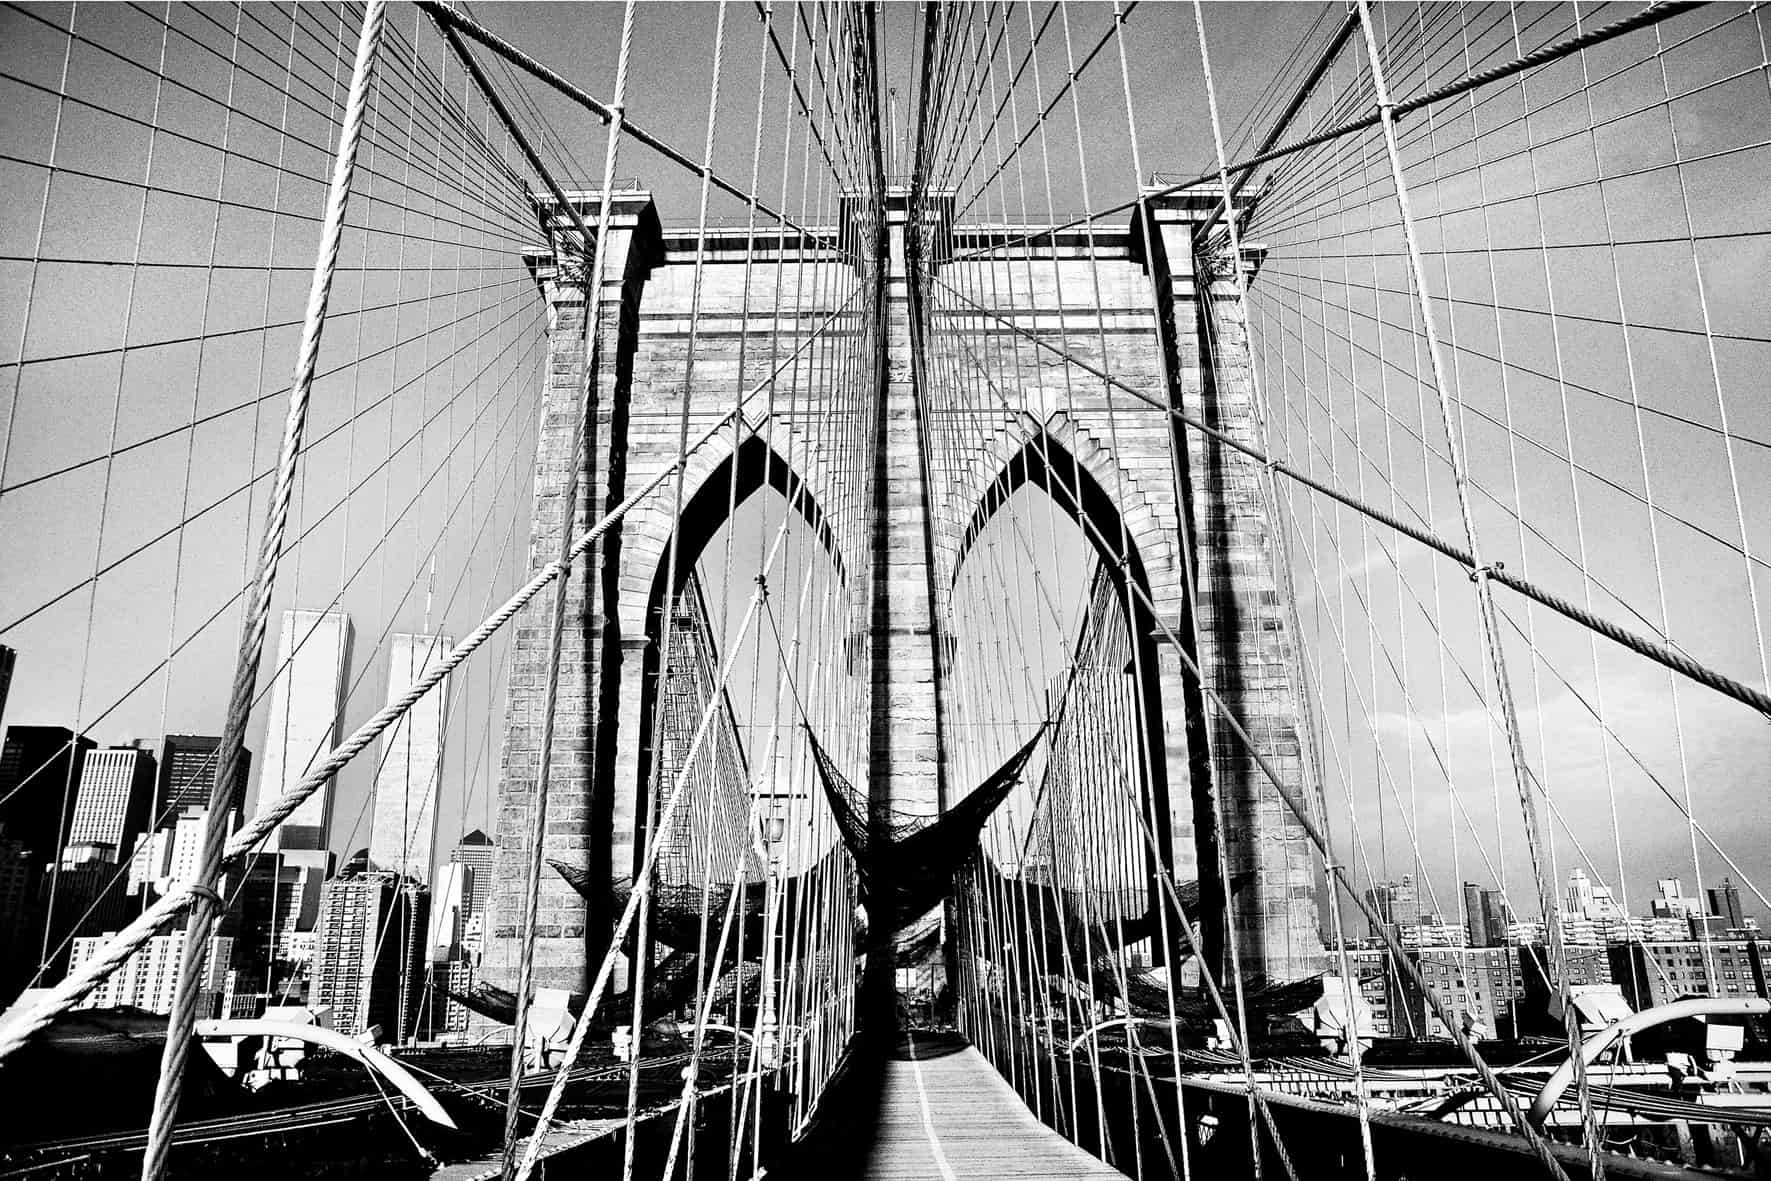 Burhan Doğançay, Brooklyn Bridge, New York, USA, 1986